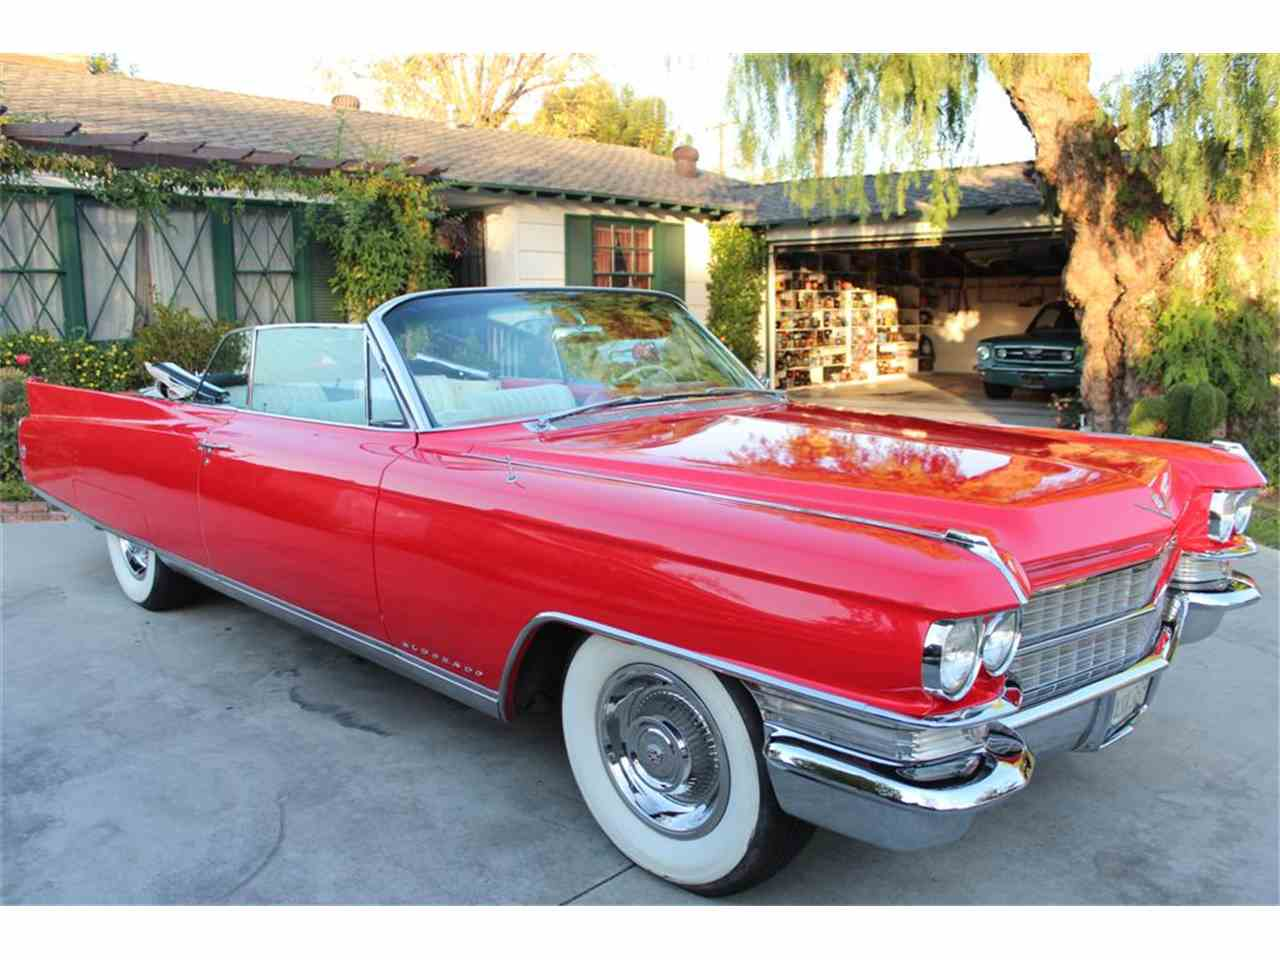 Classic Cadillac Cars For Sale In California